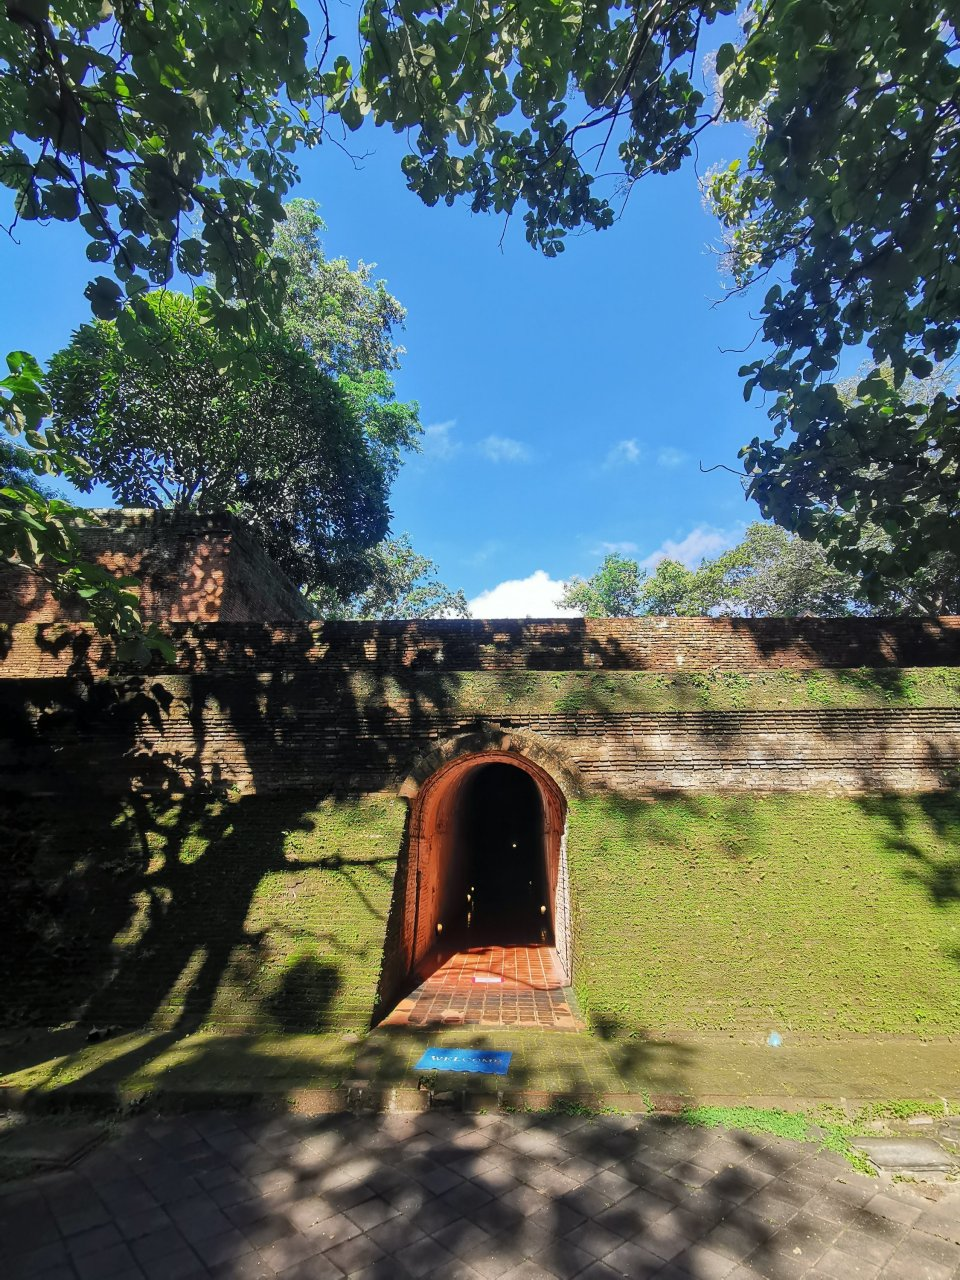 The Tunnel Temple